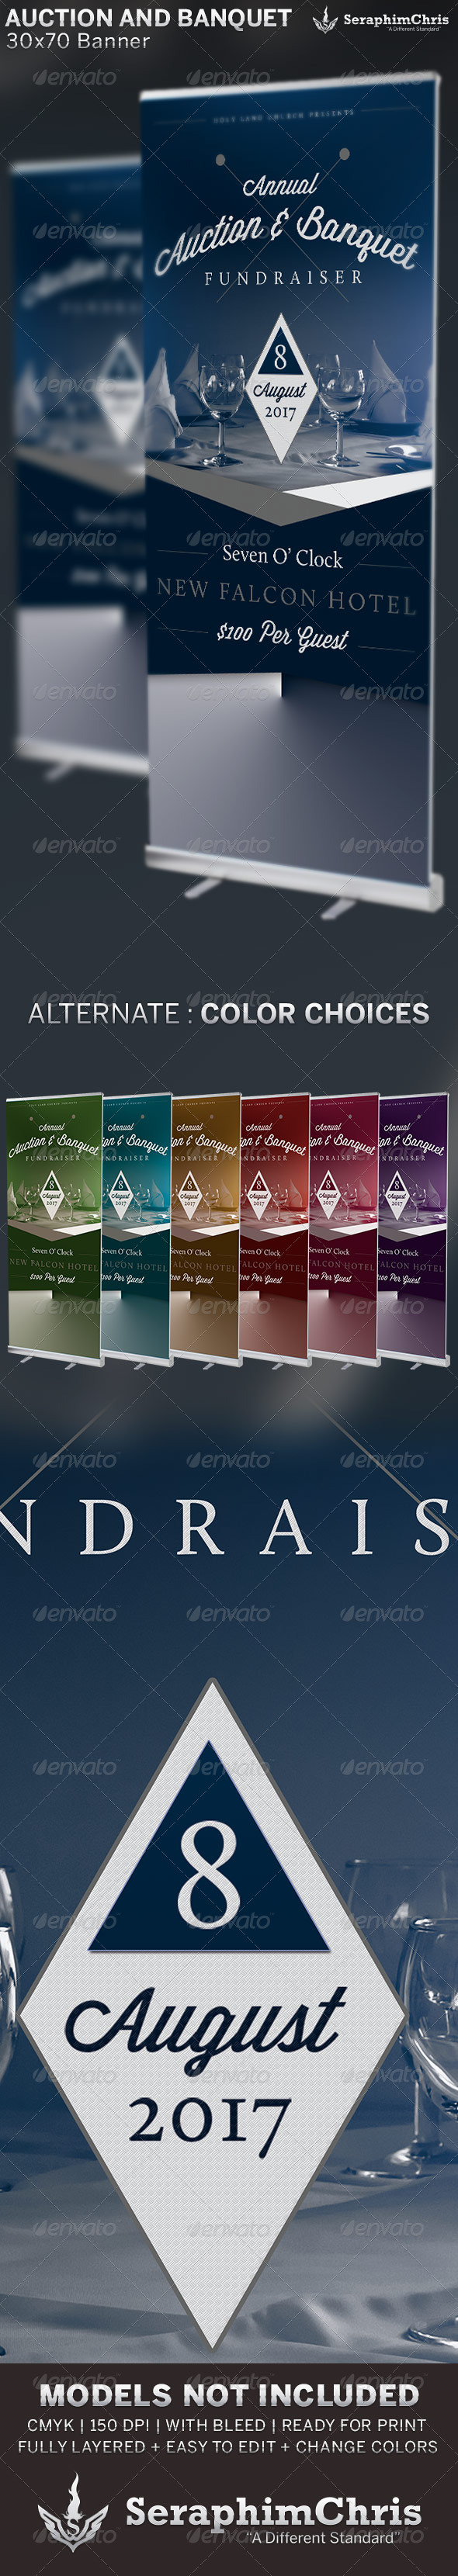 GraphicRiver Auction and Banquet Fundraiser Banner Template 6567692